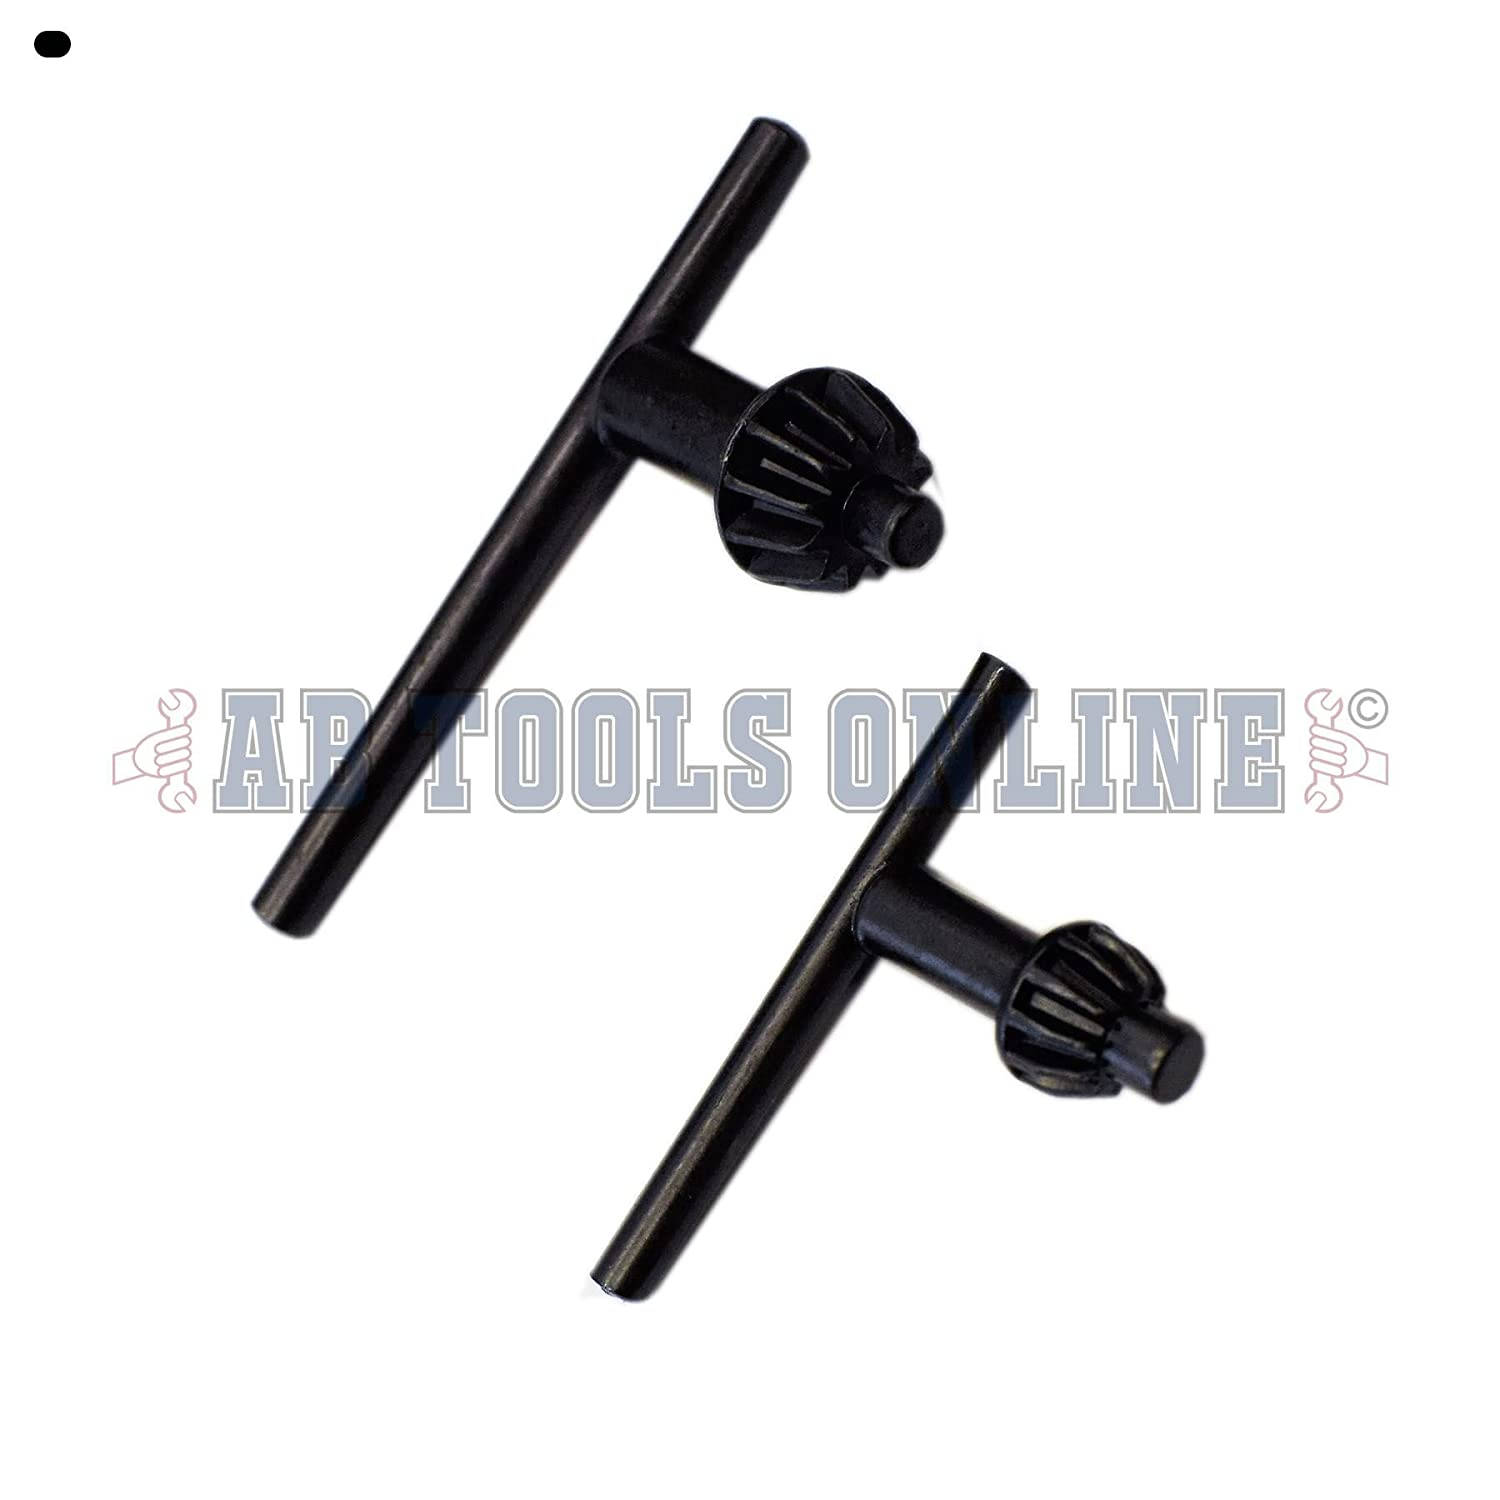 Replacement Chuck Key Set for Corded Cordless Drills 3//8 and 1//2 Chucks